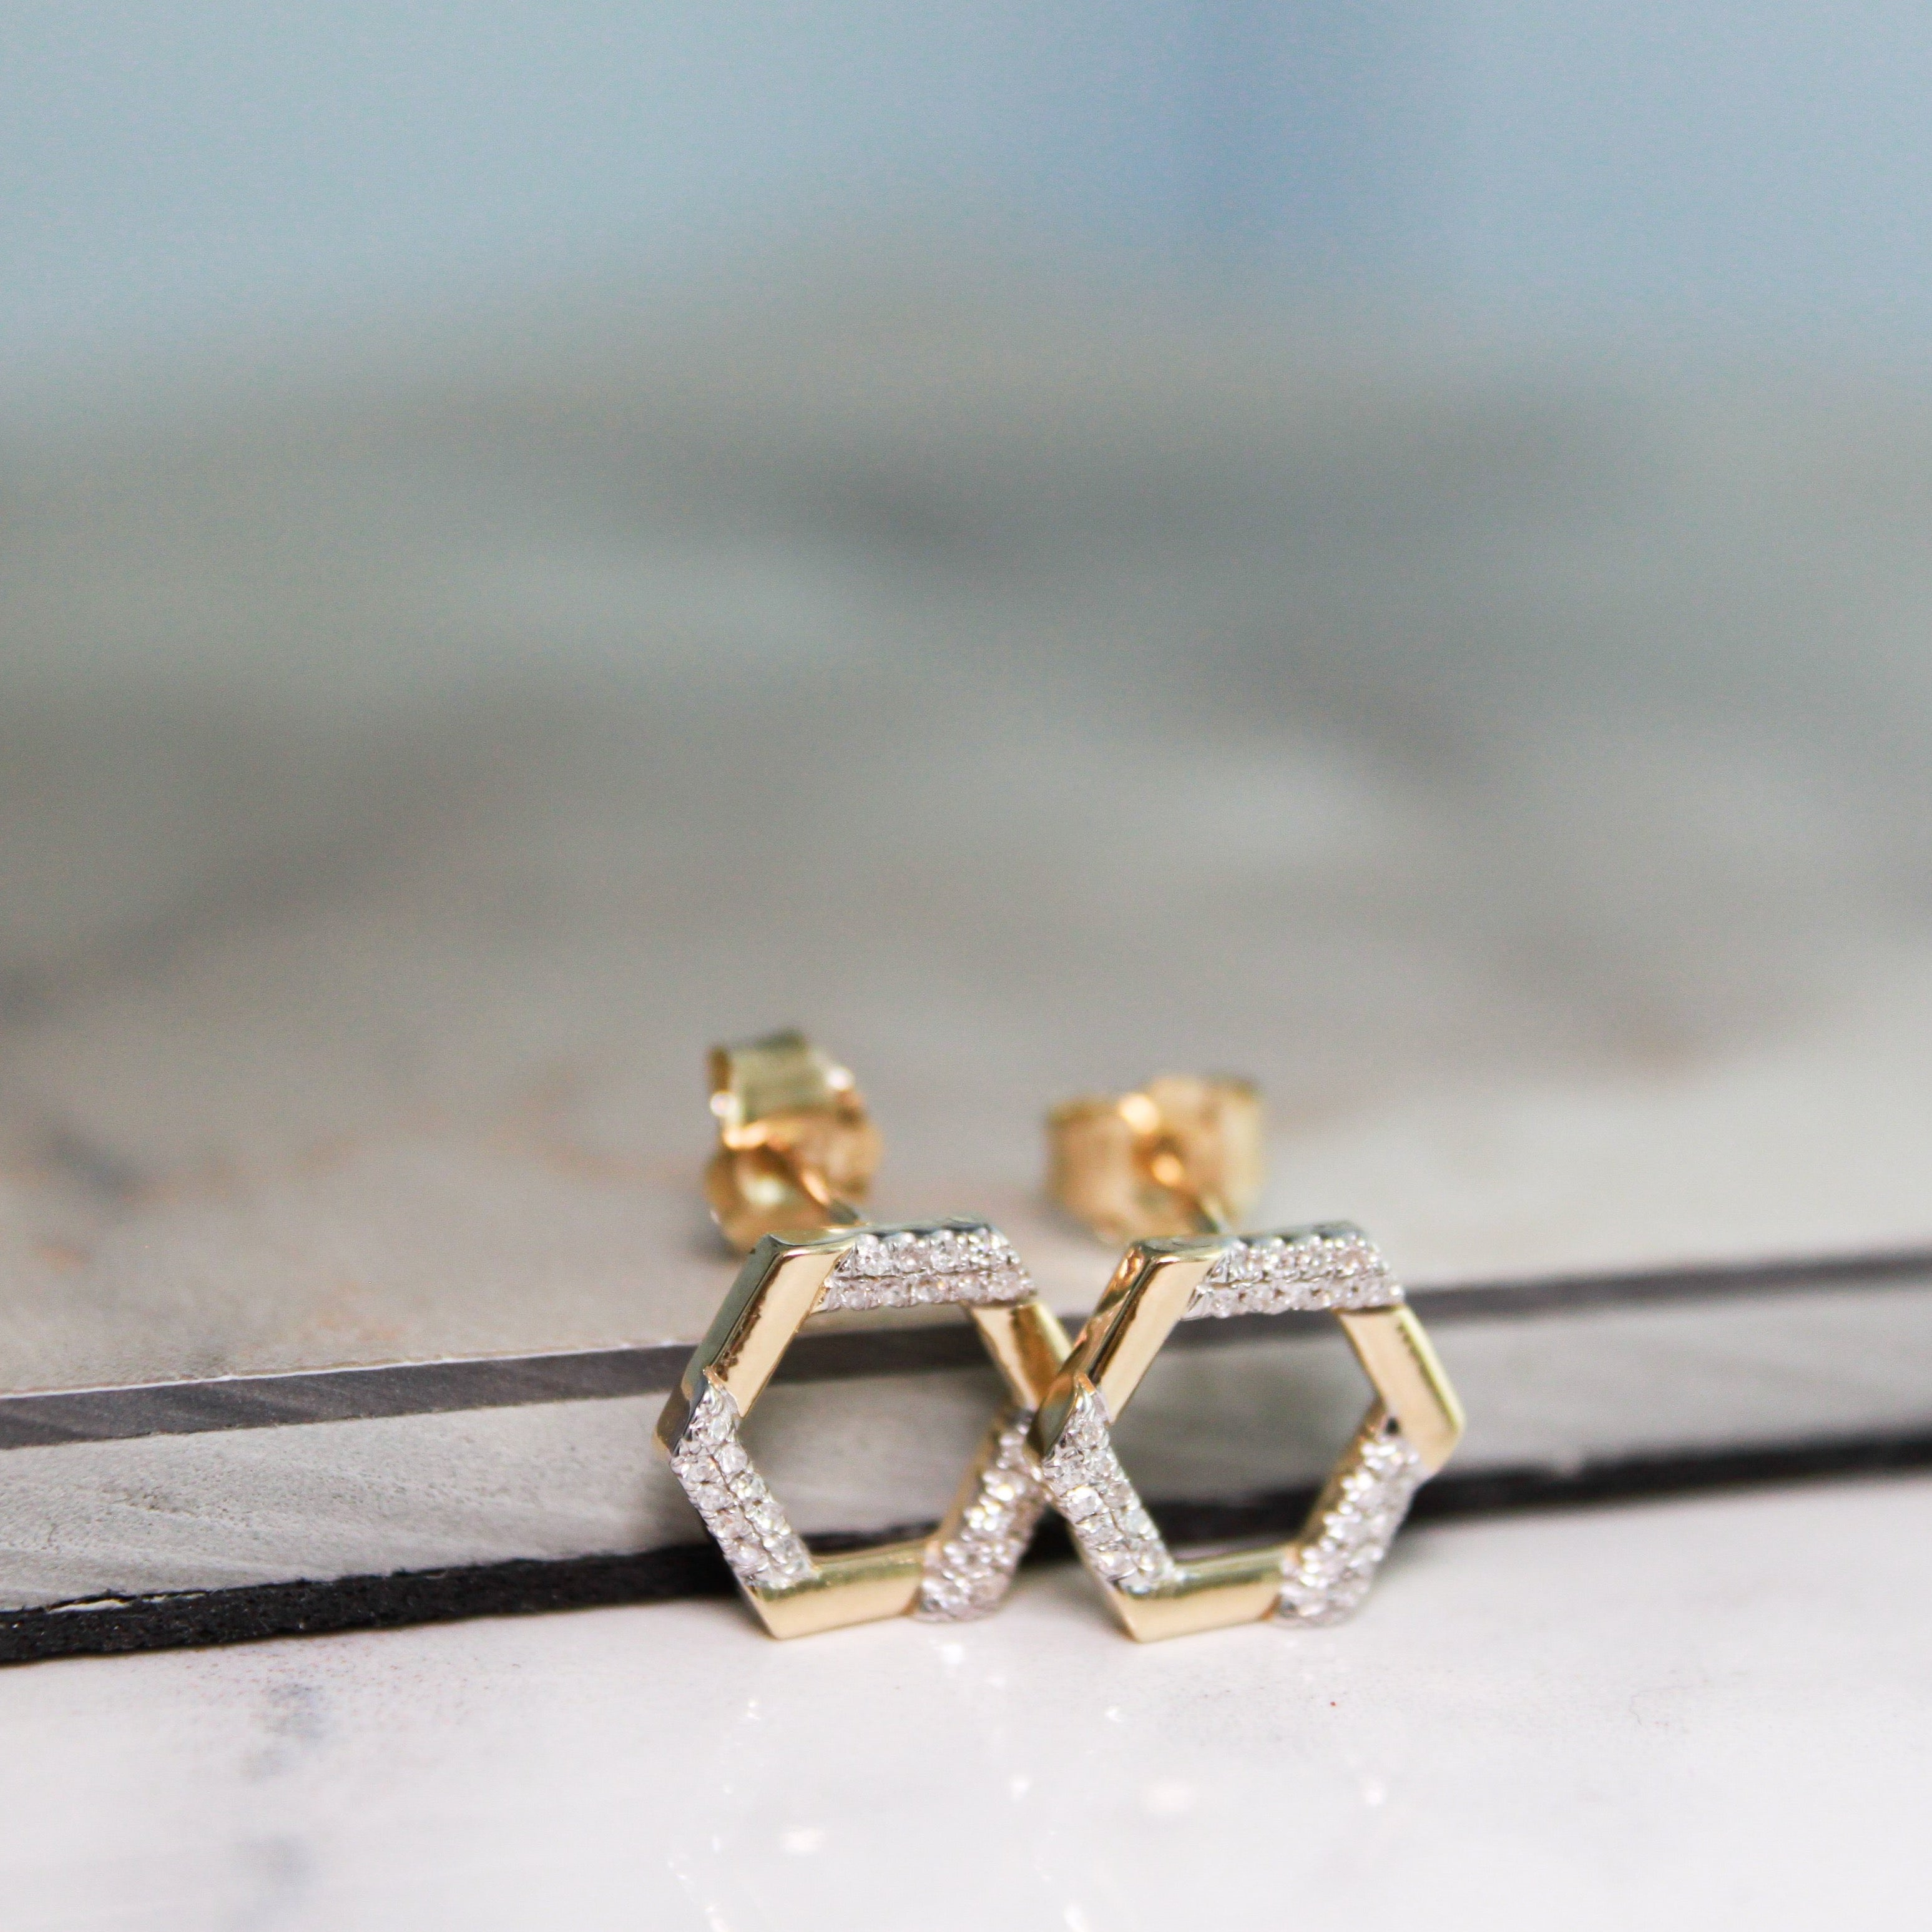 Pair Yellow Gold Hexagon Natural Diamond Earrings positoned on shelf